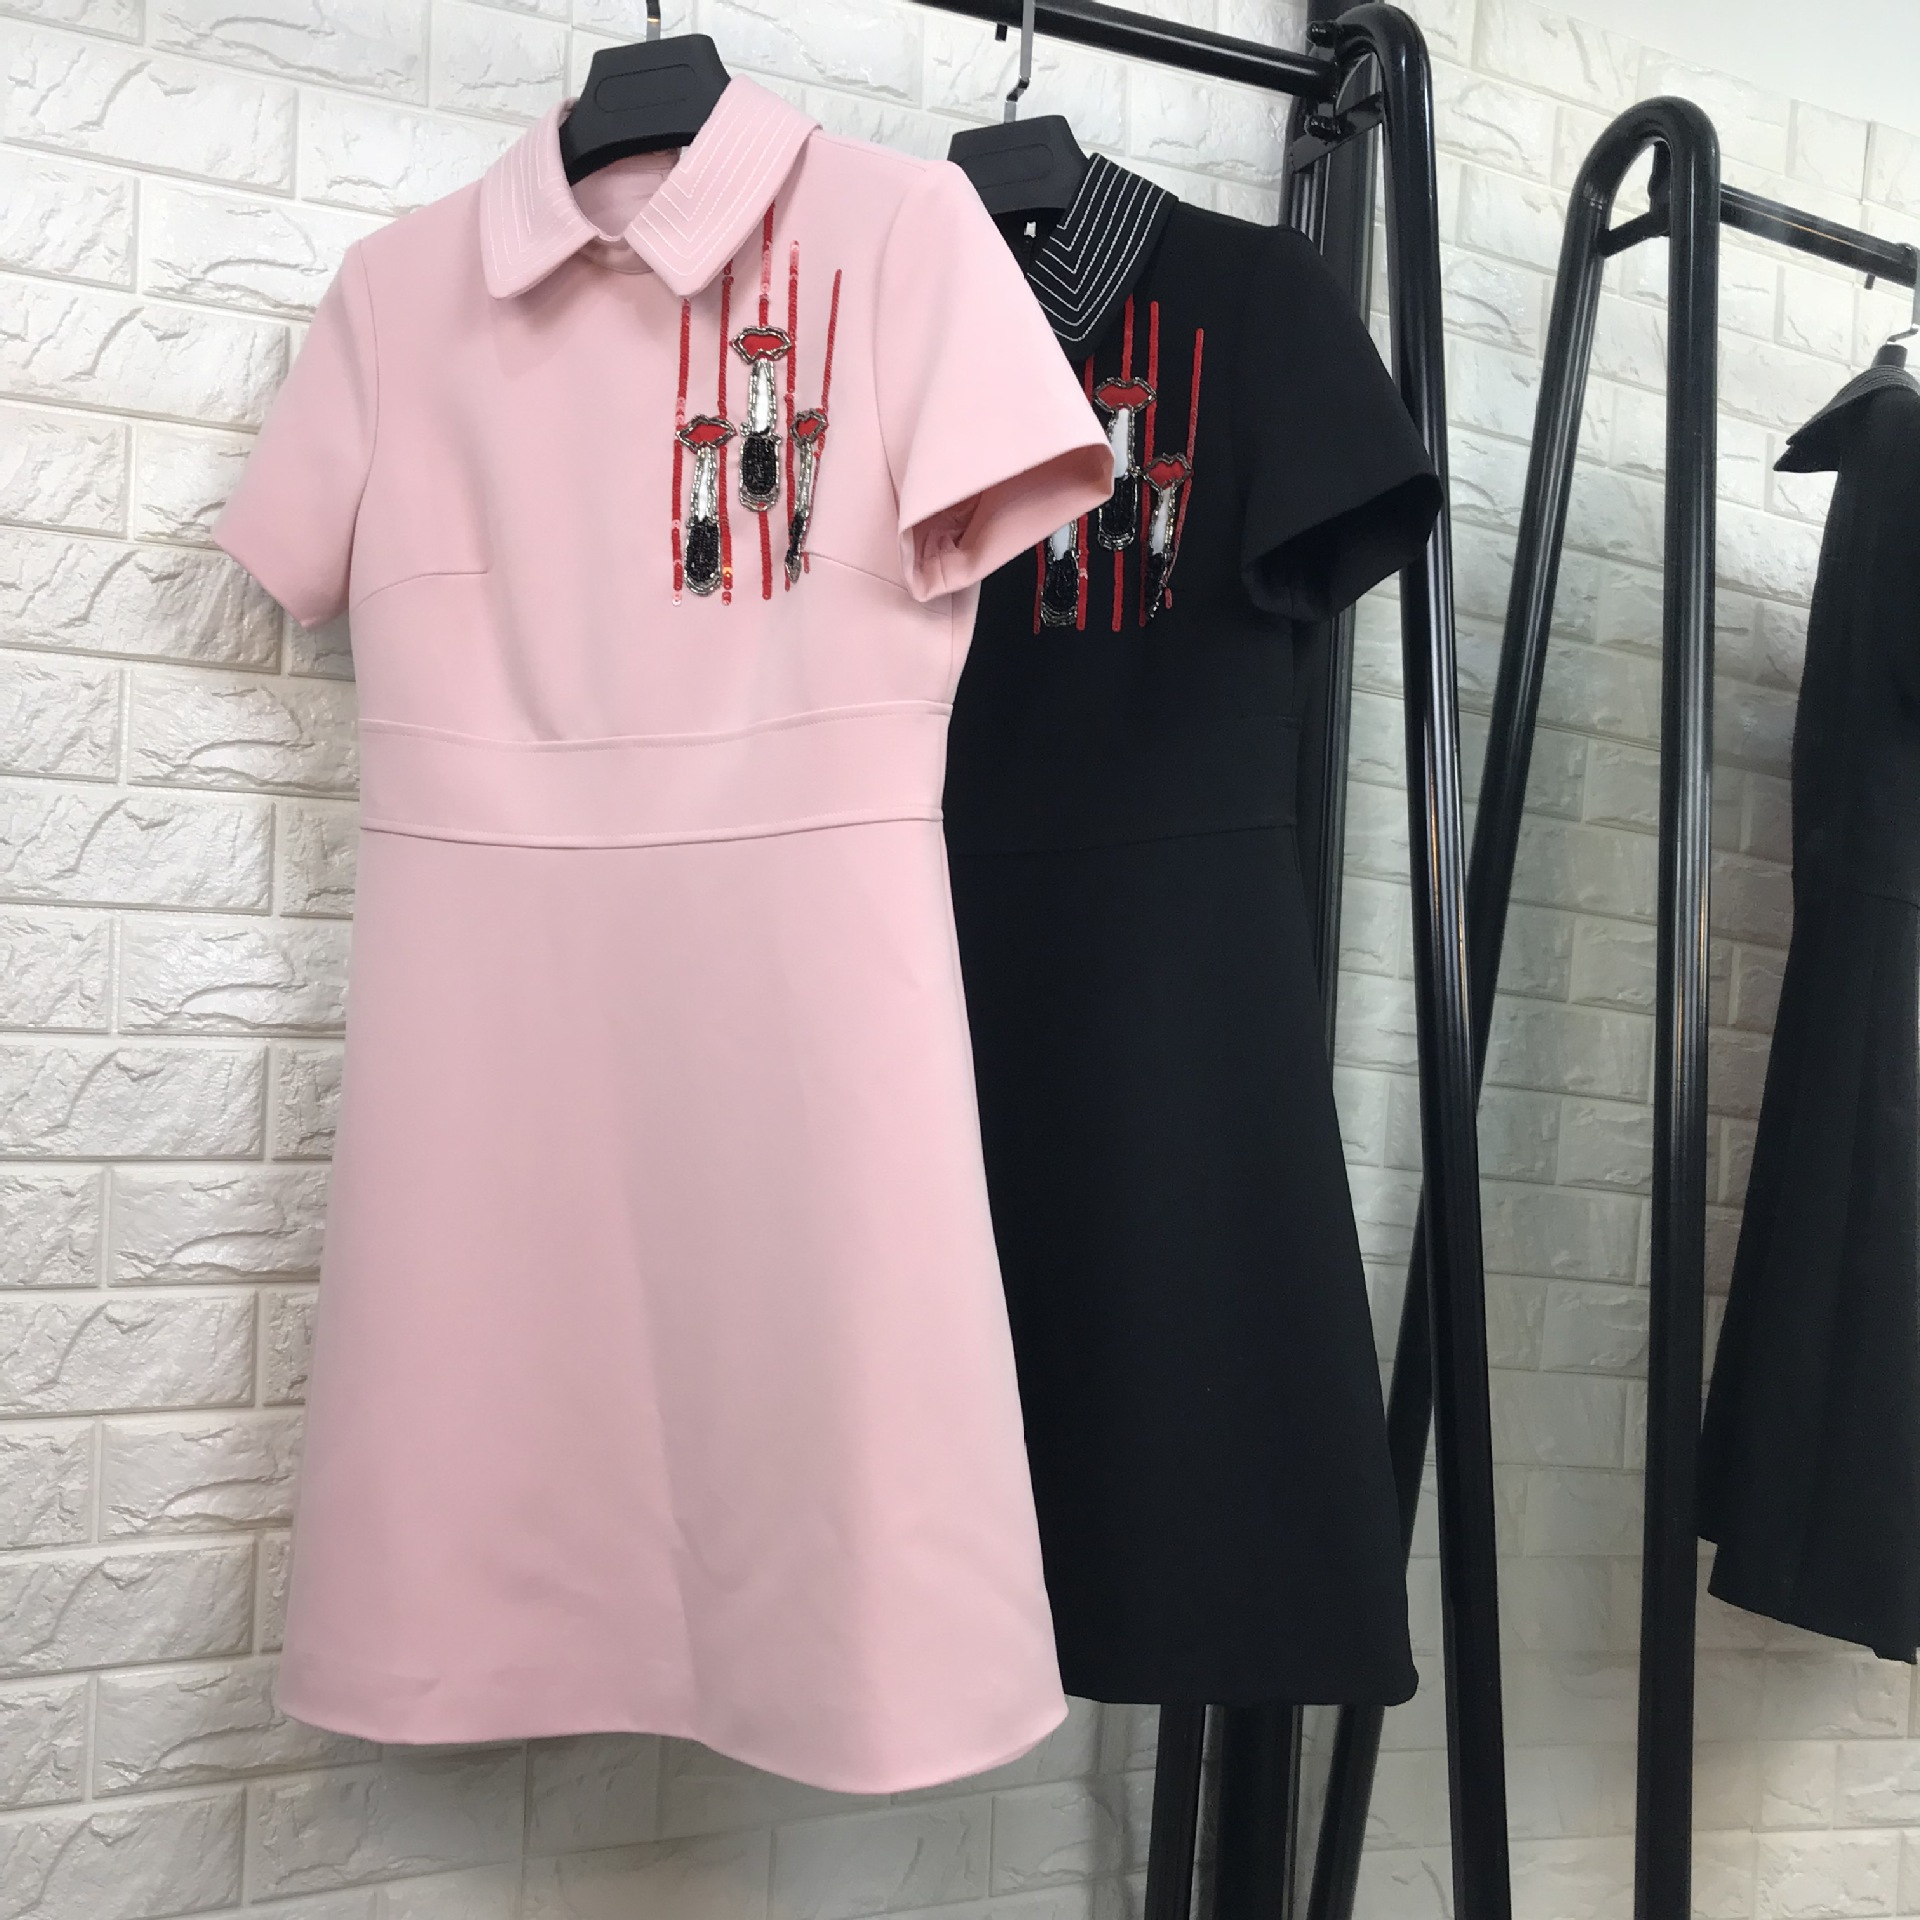 New 2018 spring summer fashion women preppy style cute peter pan collar  dress short sleeve sequined a-line dresses pink black bde6e88e43ae